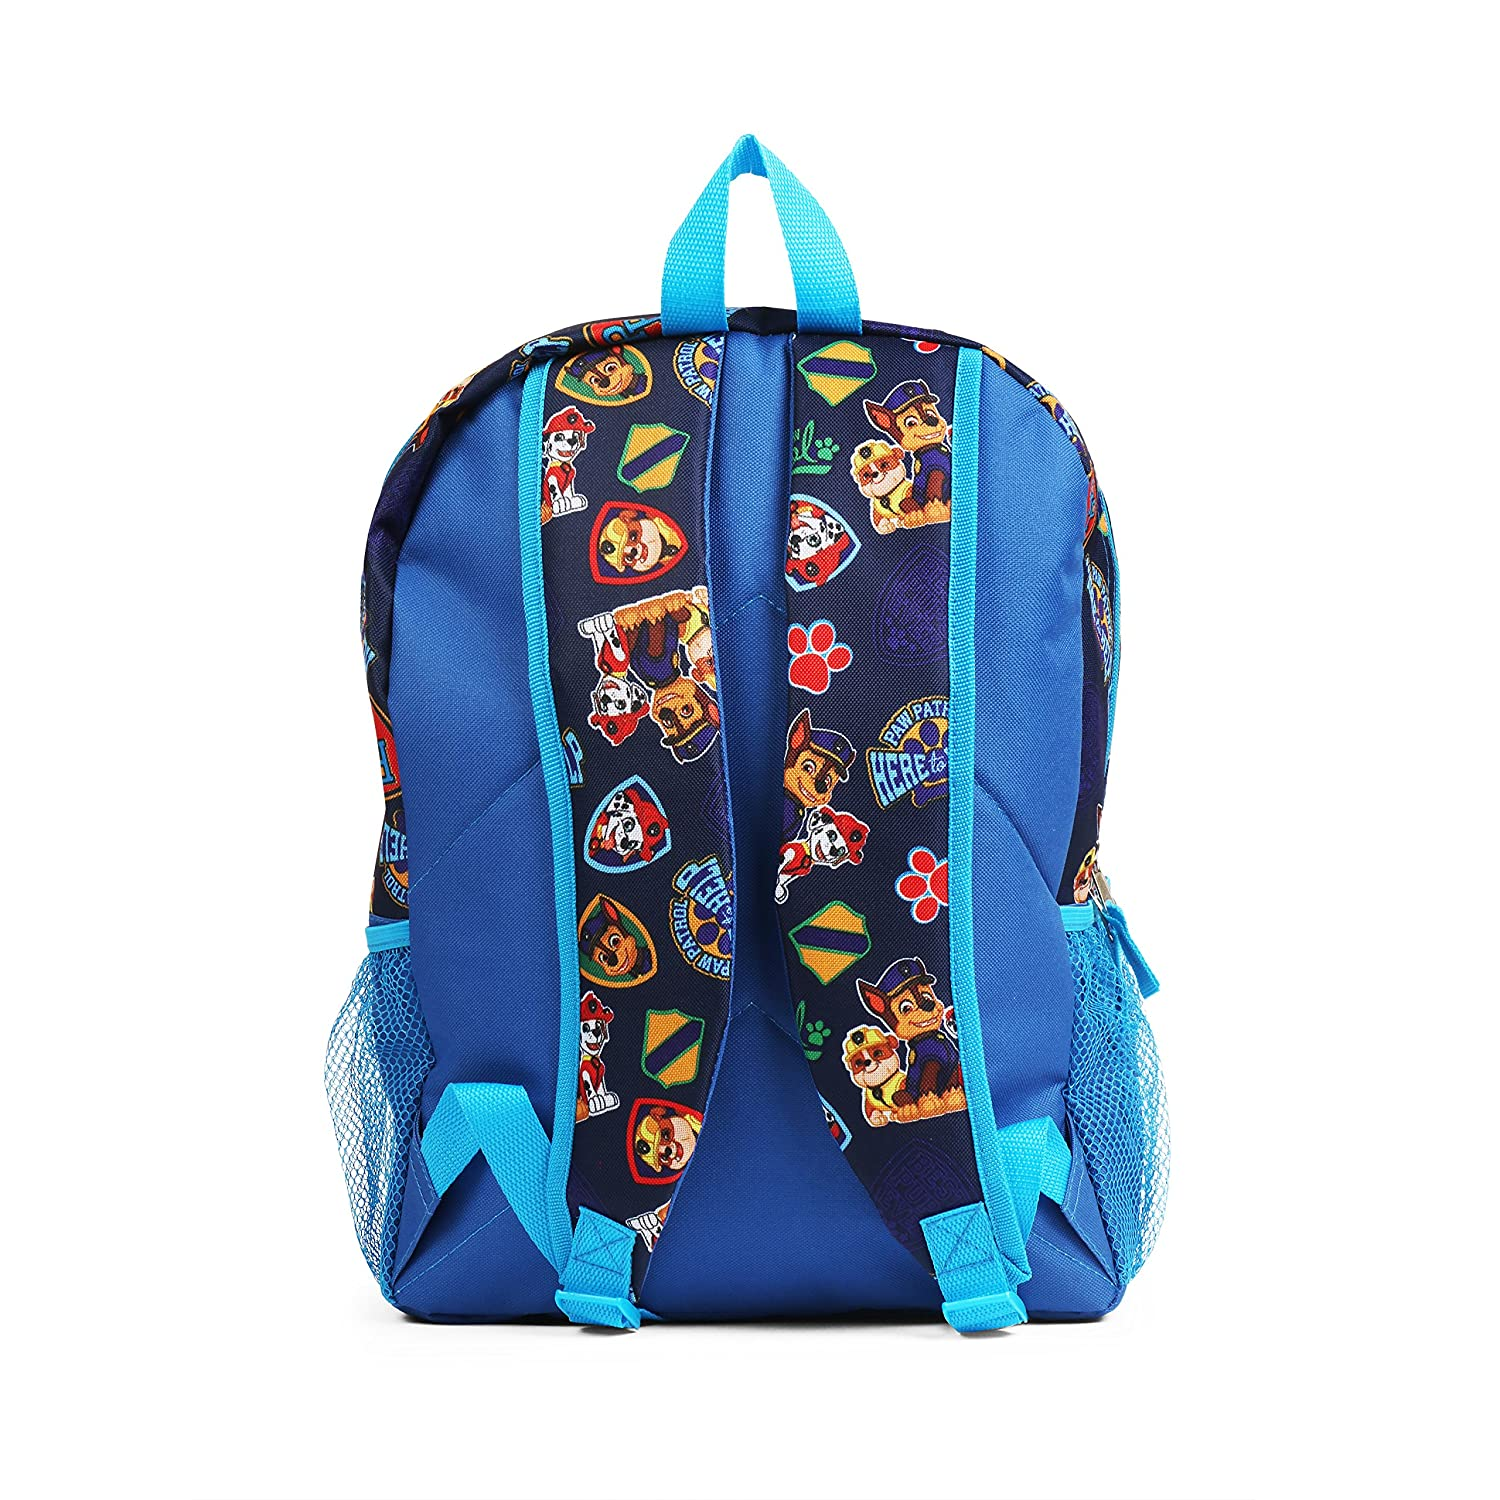 Nickelodeon Paw Patrol 16 Blue All Over Print Backpack with Stationery Set for Kids School Bag KADPPBPWSS